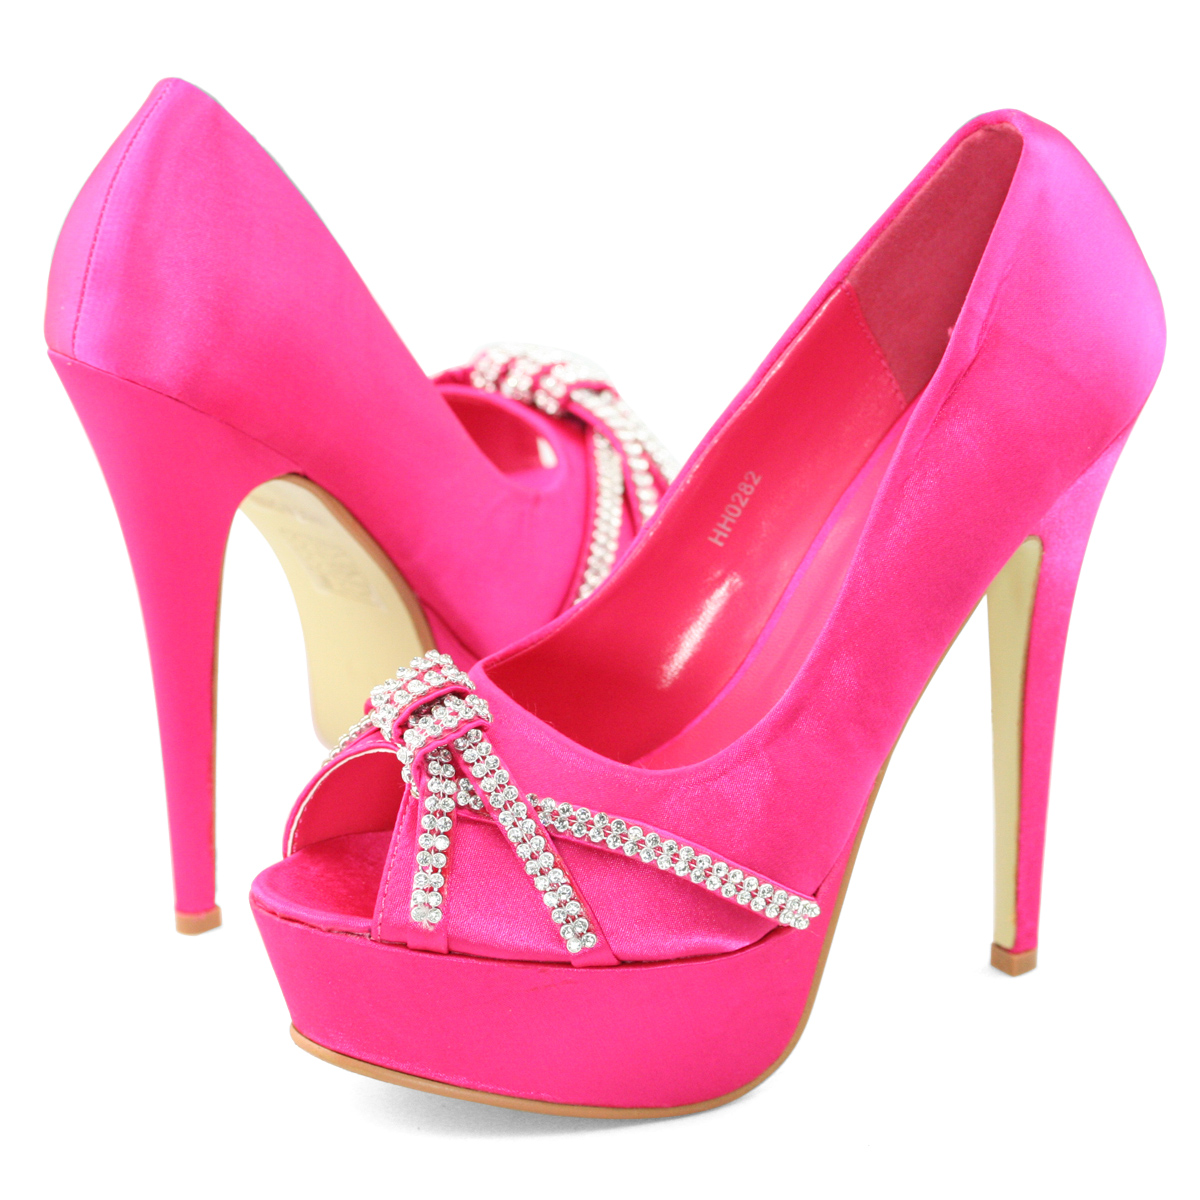 Fuschia Pink Heels Wedding - Is Heel